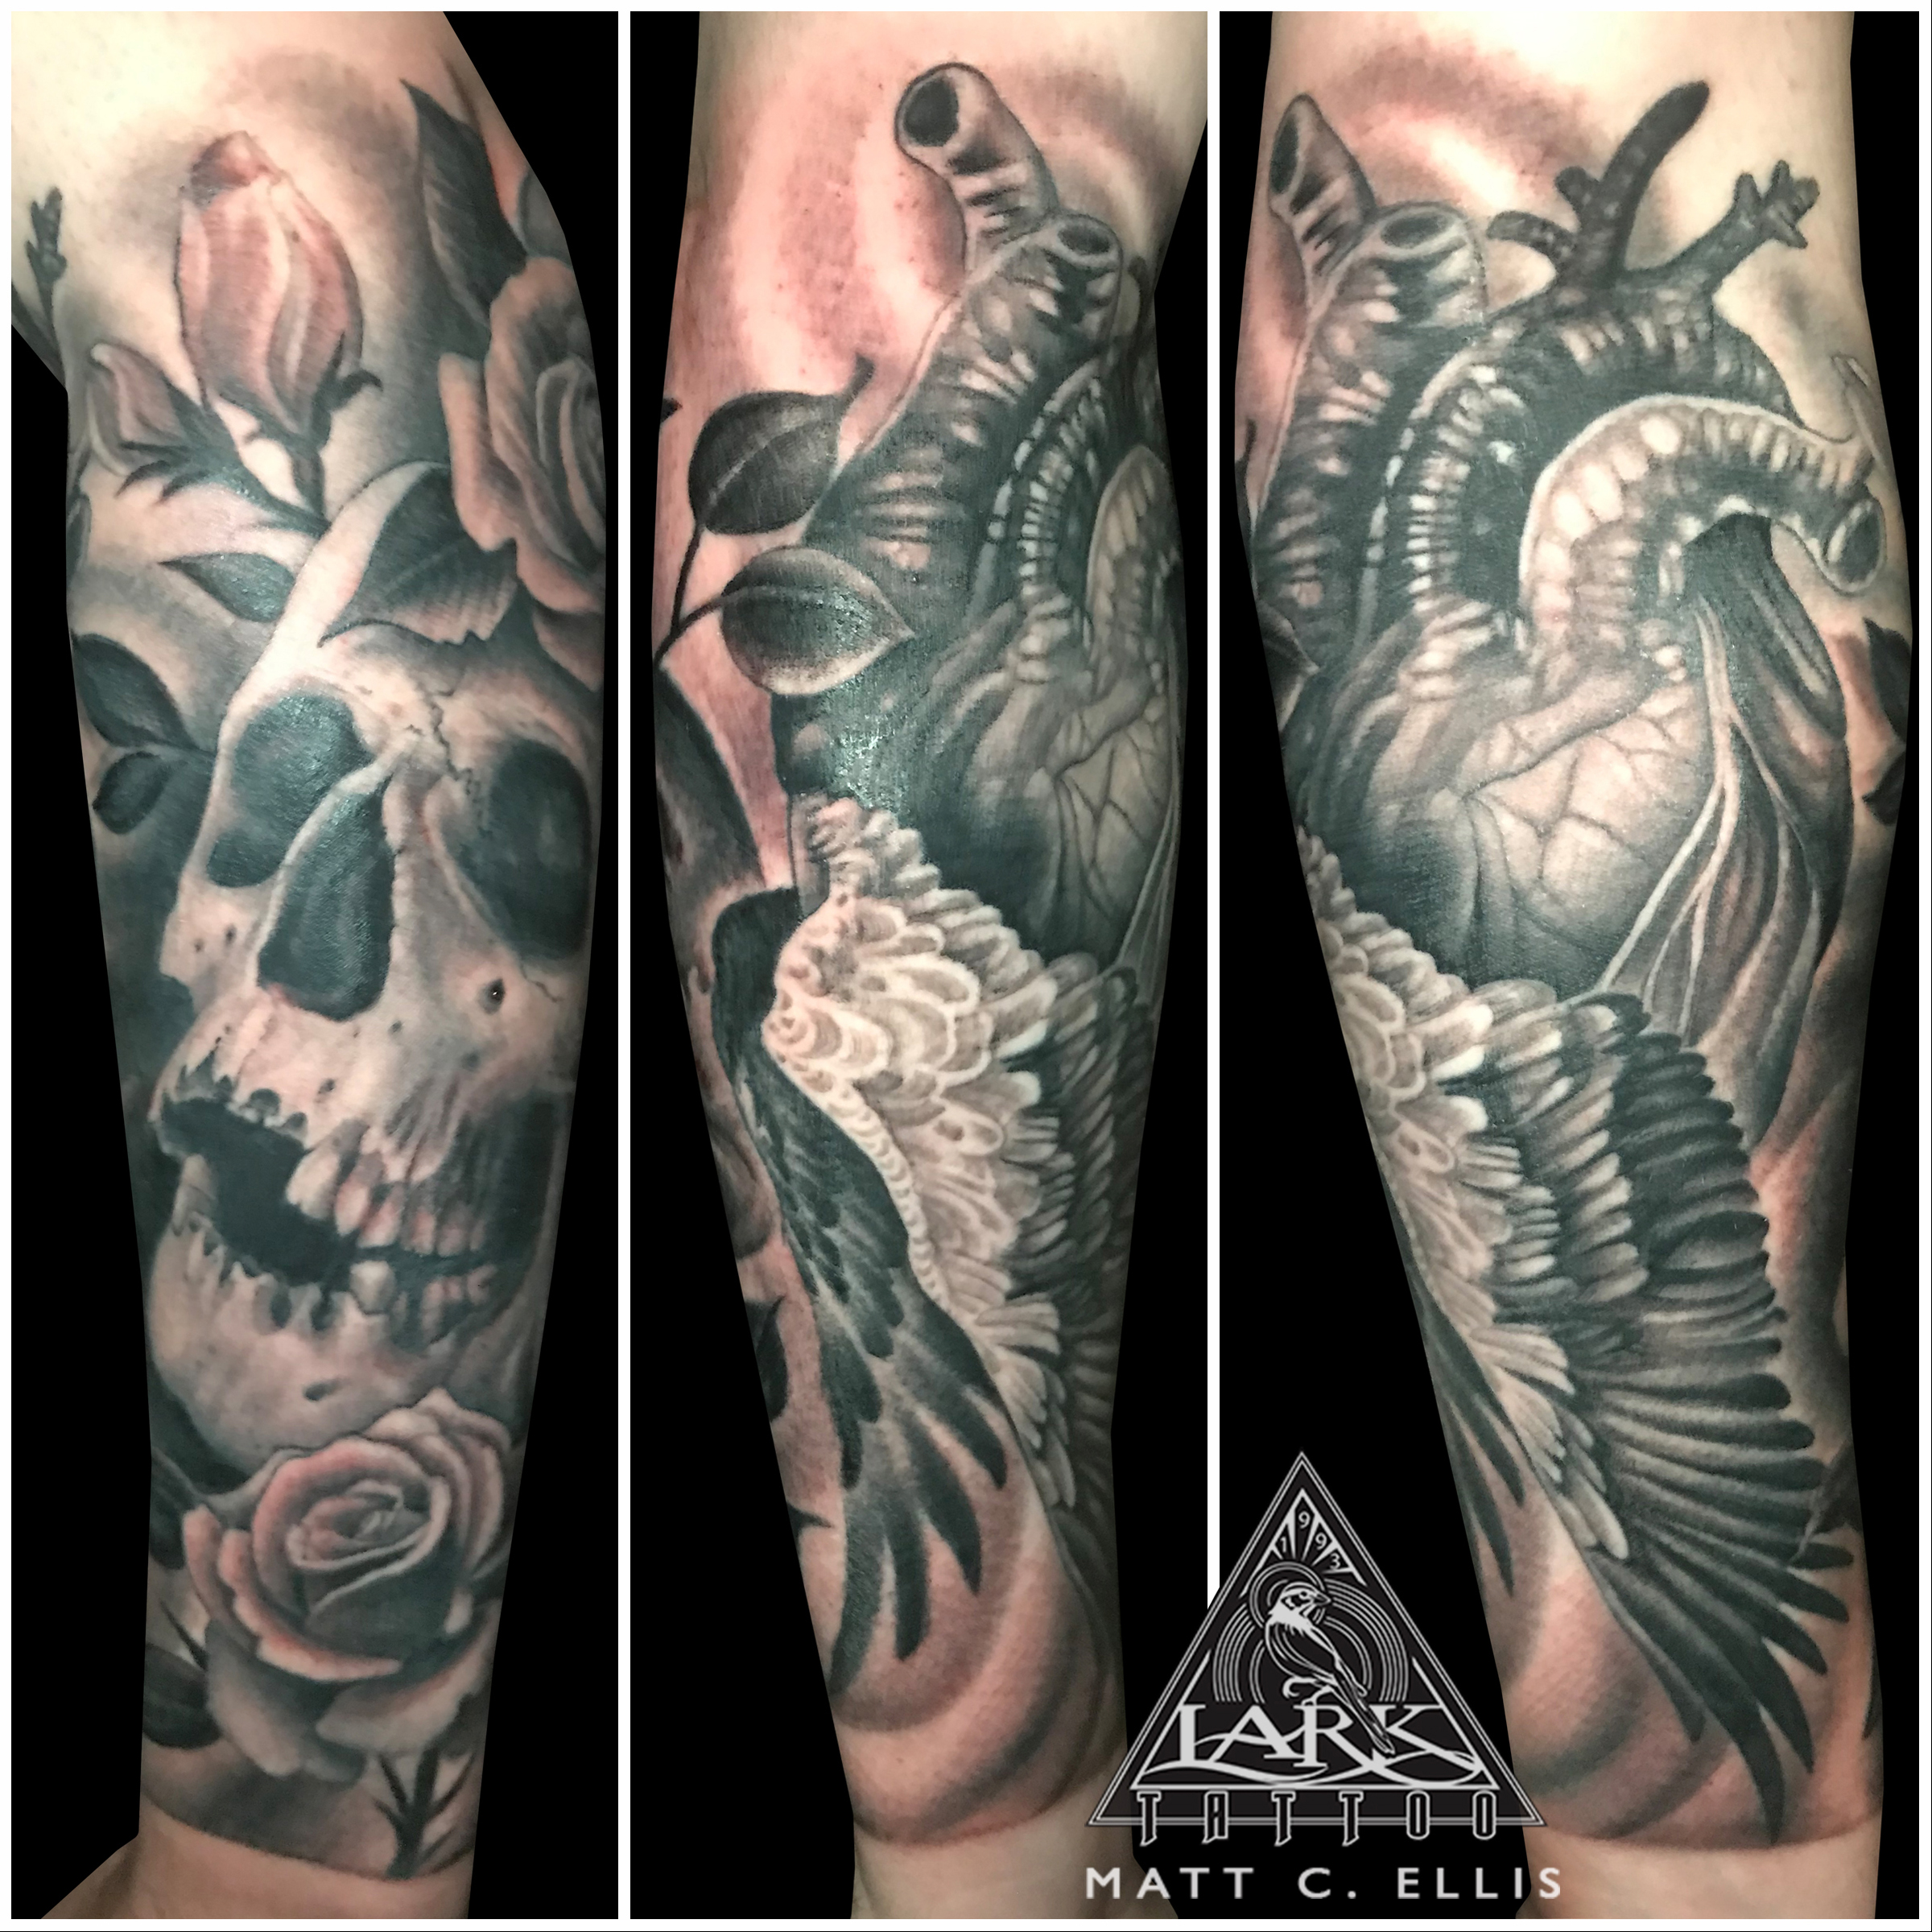 #LarkTattoo #Tattoo #Tattoos #TattooArtist #Tattoist #Tattooer #LongIslandTattooArtist #LongIslandTattooer #LongIslandTattoo #TattooSleeve #SleeveTattoo #ArmTattoo #FullArmTattoo #LargeTattoo #BNG #BNGTattoo #BlackAndGray #BlackAndGrayTattoo #BlackAndGrey #BlackAndGreyTattoo #Realism #RealismTattoo #Realistic #RealisticTattoo #Skull #SkullTattoo #Rose #RoseTattoo #Heart #HeartTattoo #Anatomical #AnatomicalTattoo #Bird #BirdTattoo #Flower #FlowerTattoo #TattooOfTheDay #Tat #Tats #Tatts #Tatted #Inked #Ink #TattooInk #AmazingInk #AmazingTattoo #BodyArt #LarkTattooWestbury #Westbury #LongIsland #NY #NewYork #USA #Art #Tattedup #InkedUp #LarkTattoos